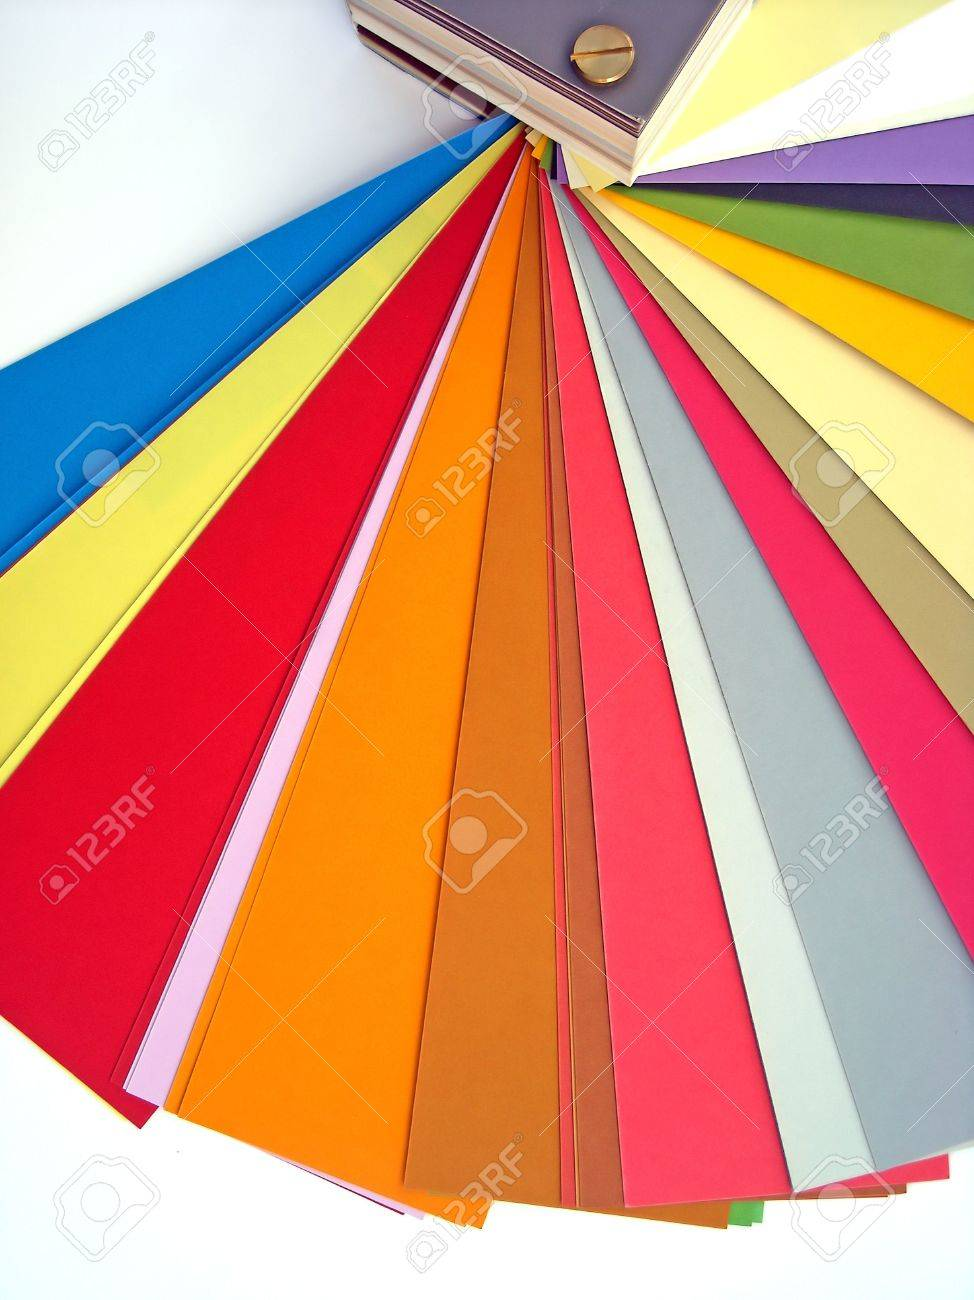 Color printing paper - Paper Color Chart Background Different Weights And Colors Of Printing Paper Stock Photo